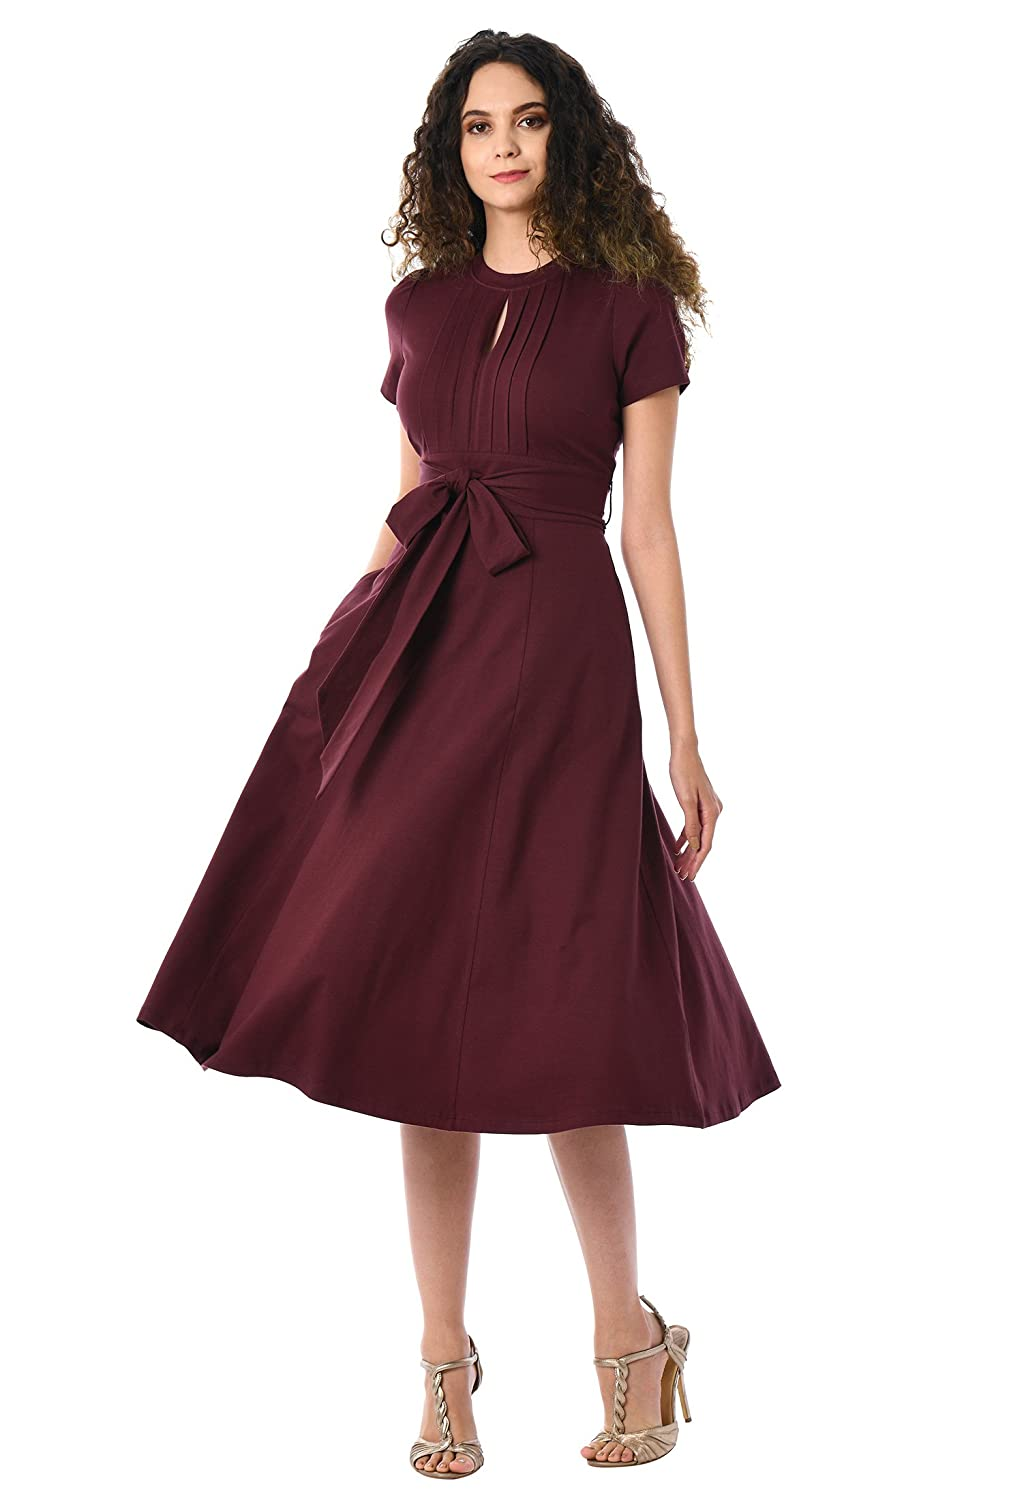 1940s Costume & Outfit Ideas – 16 Women's Looks eShakti Womens Tux Pleat Front Cotton Knit Dress $59.95 AT vintagedancer.com